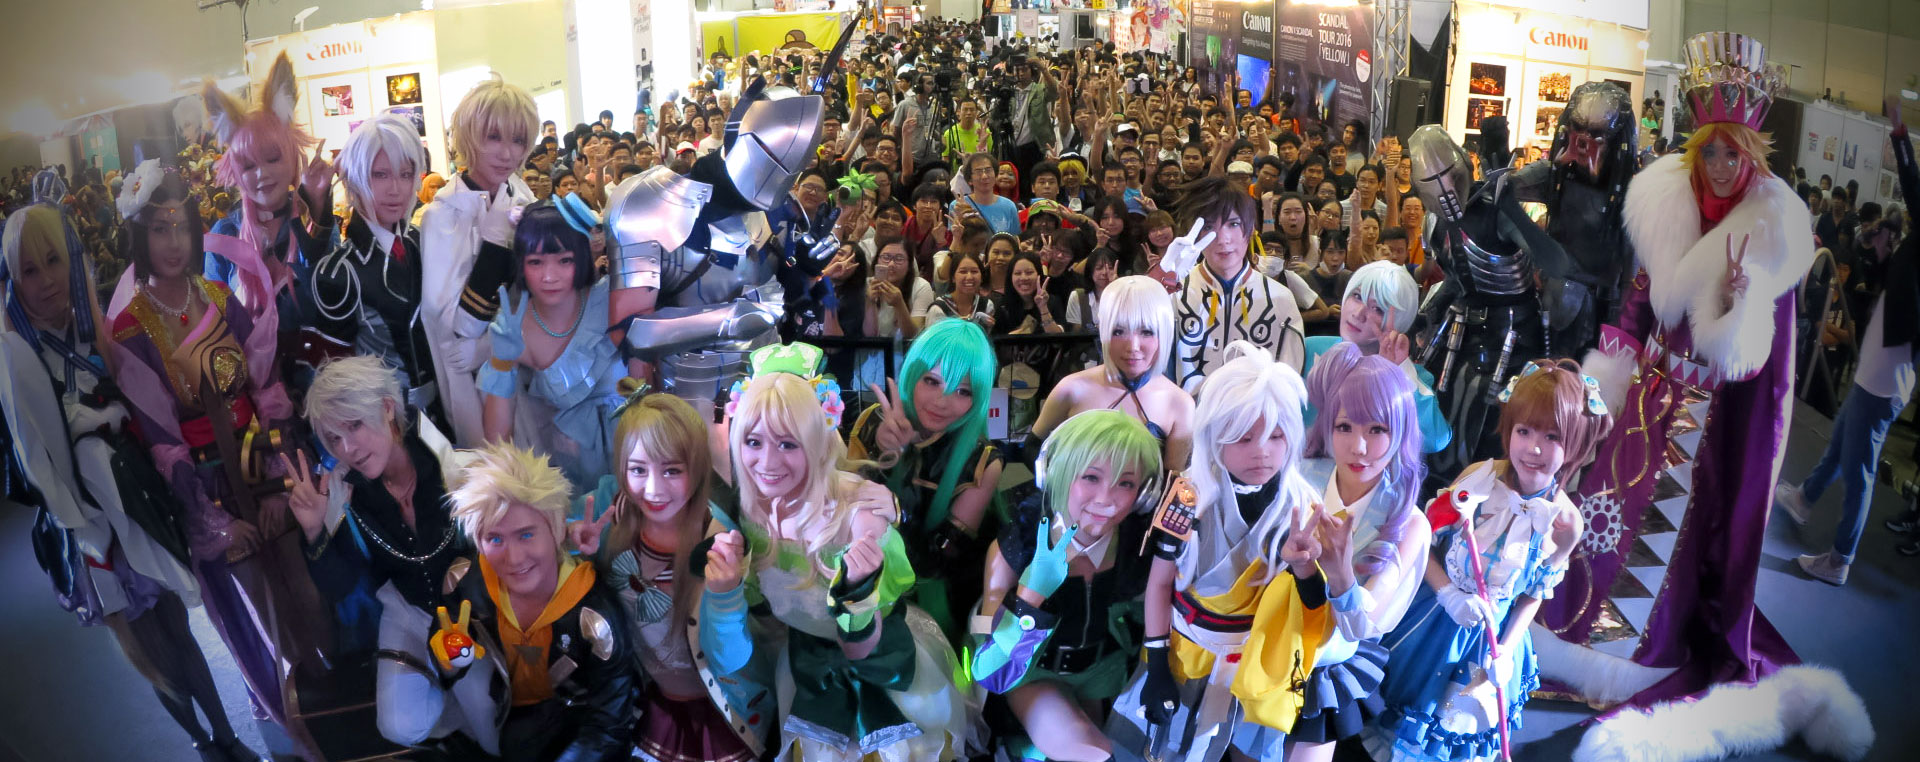 Good News The Tradition Of Cosplay Singles Showcase Continues In 2017 All Cosplayers From Nations Hear Our Call And Lets Join Fun